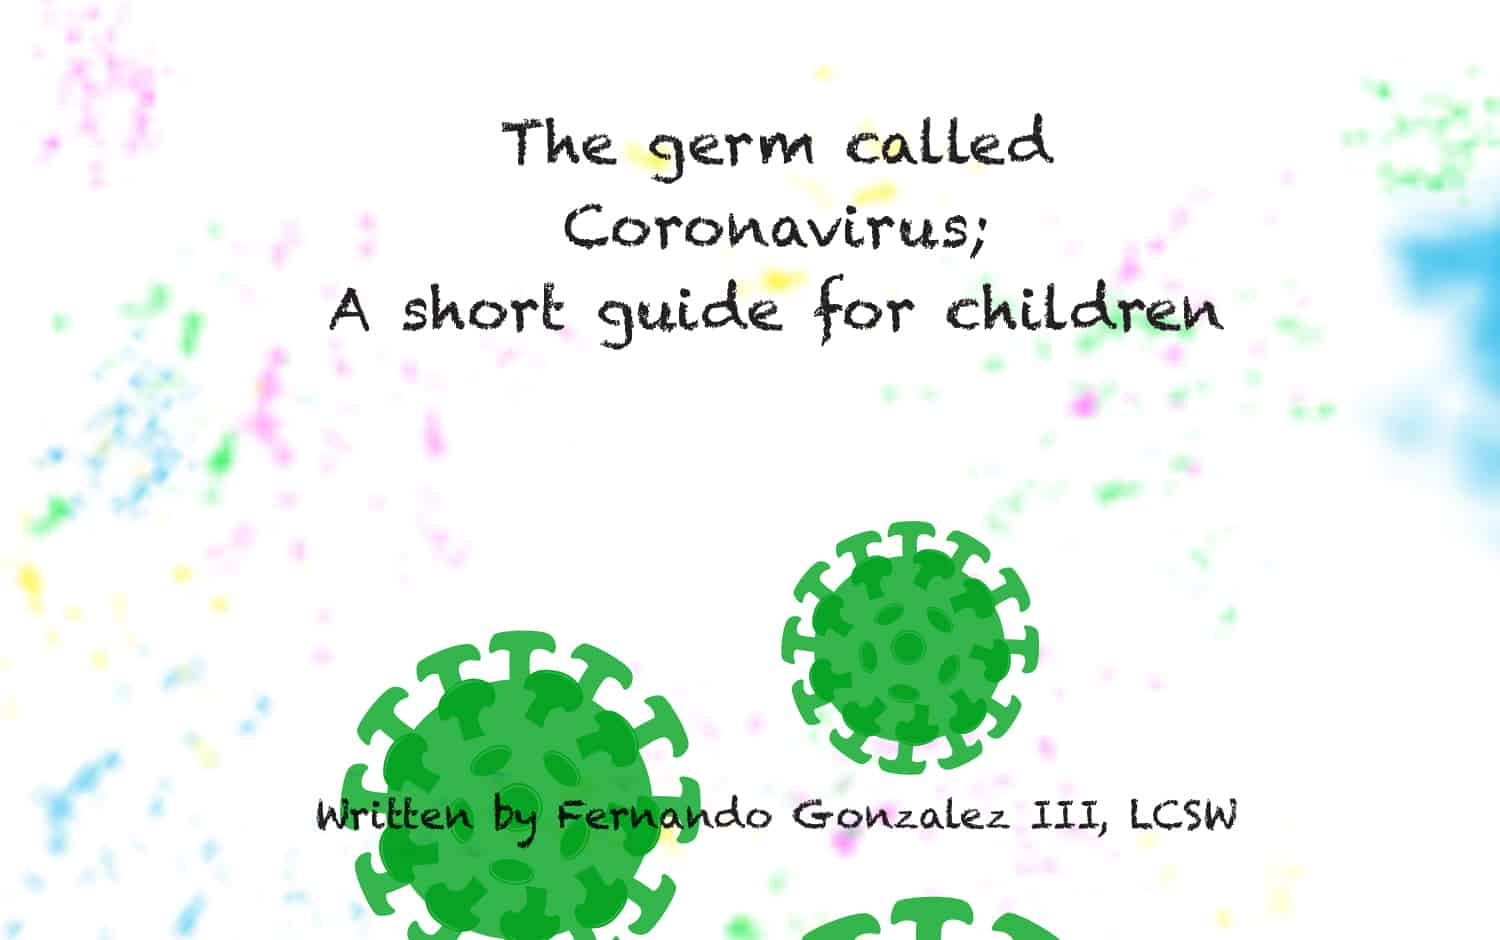 Image of germs and title of story